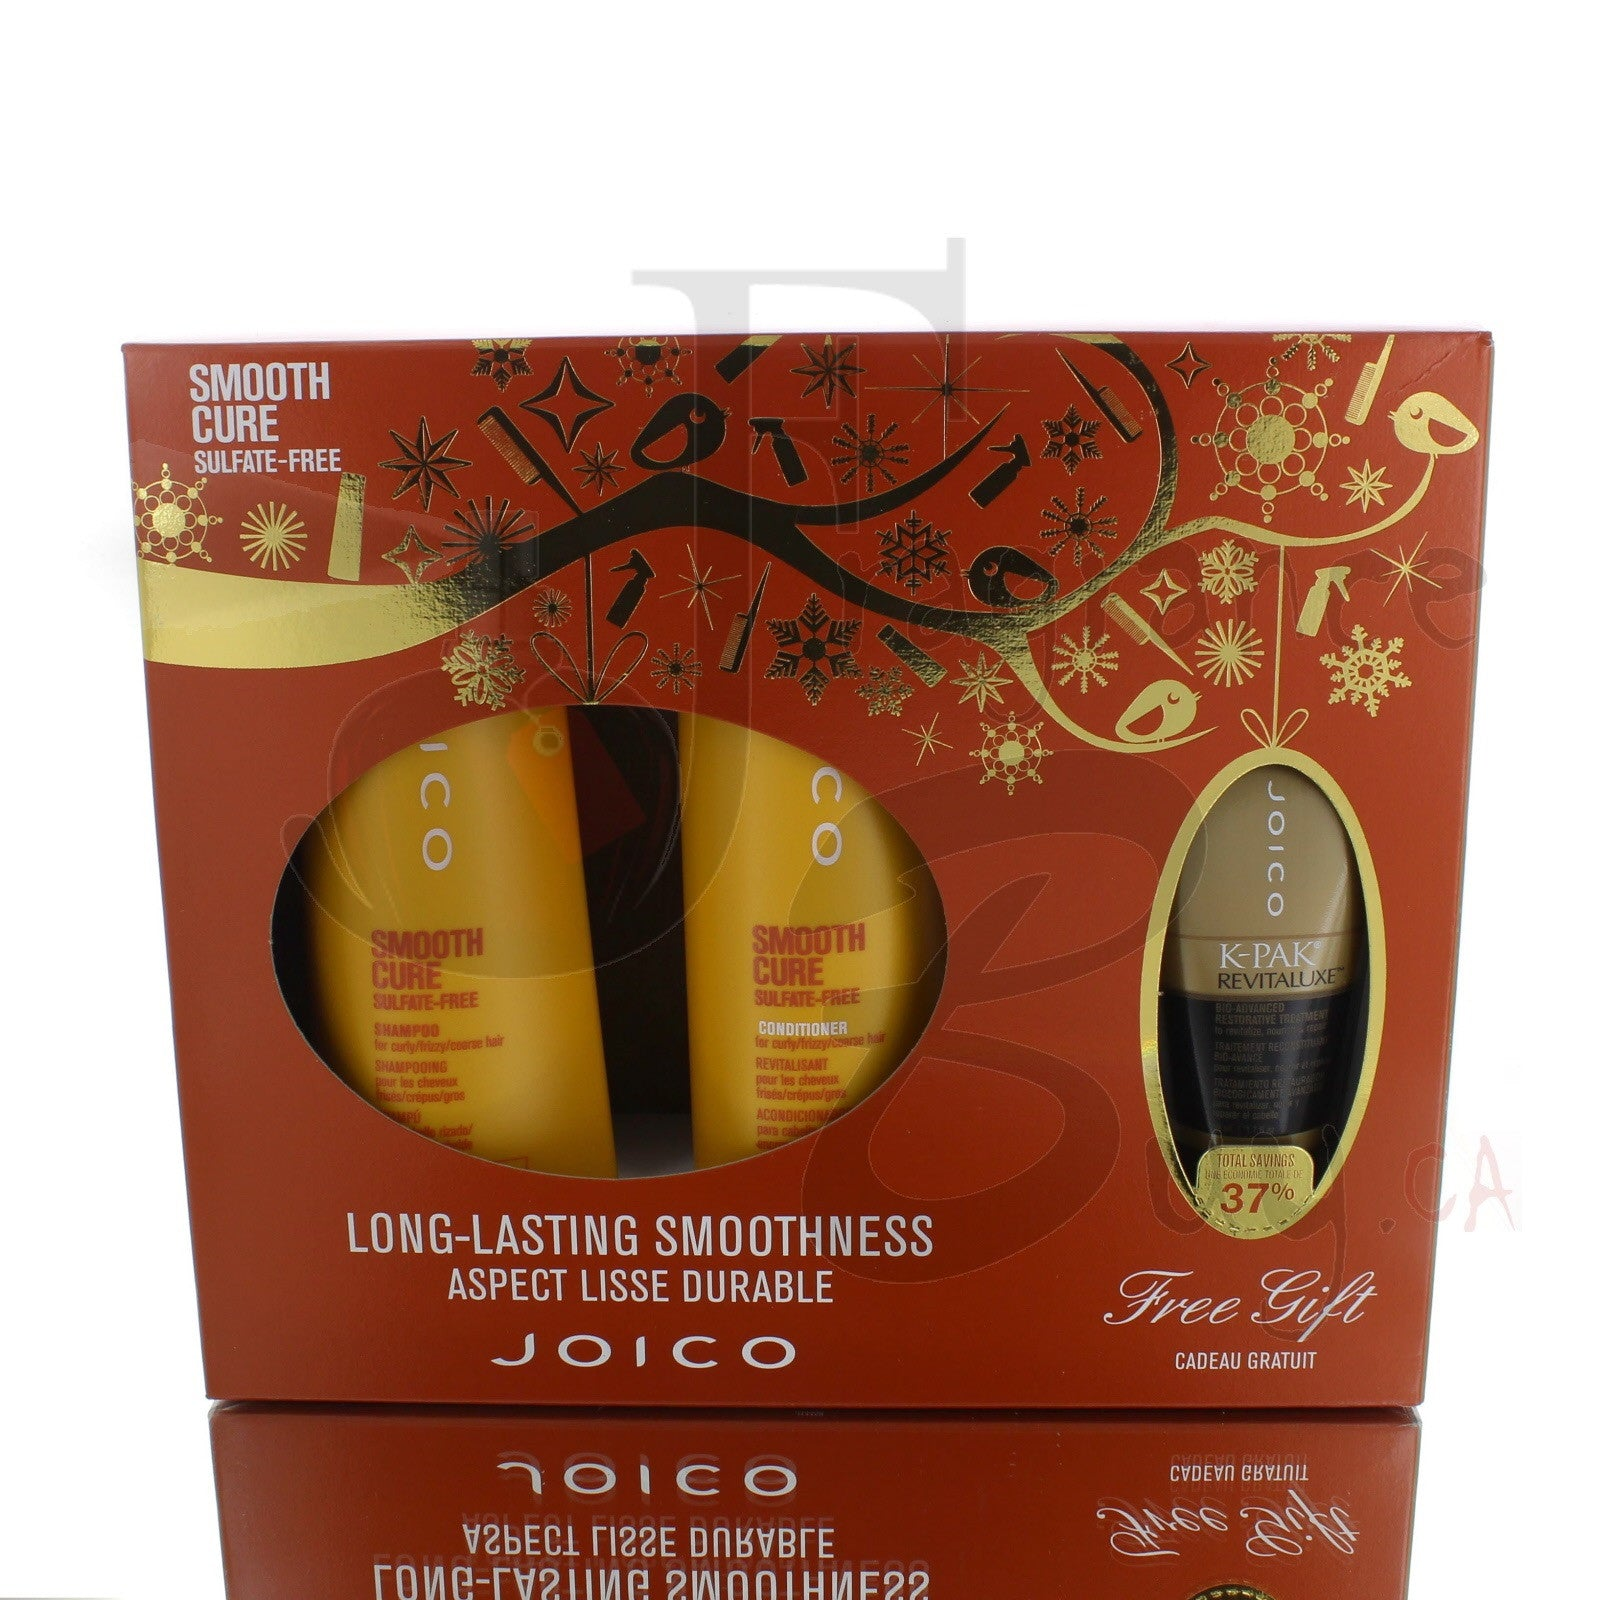 Joico Smooth Cure Sulfate-Free Ultimate Shampoo/Conditioner Kit